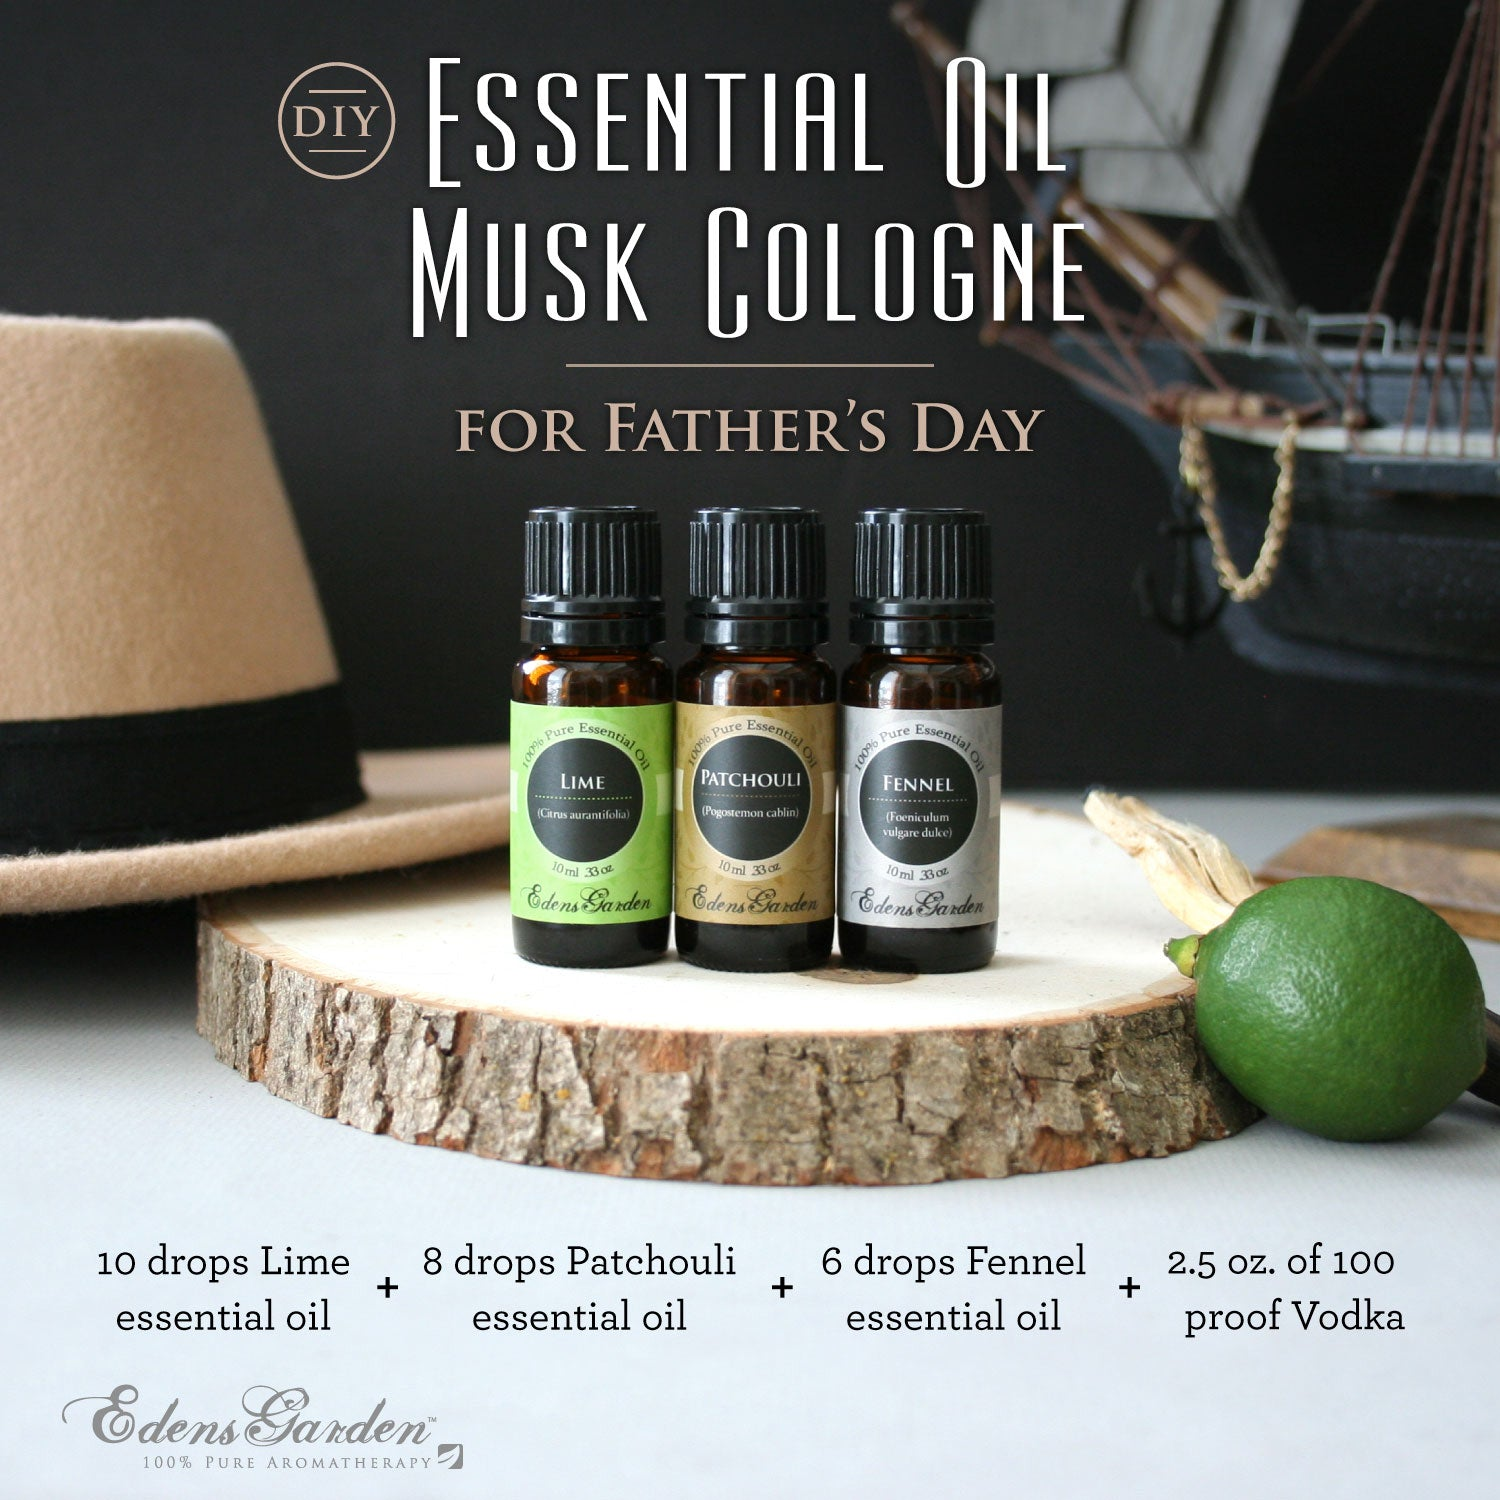 Easy diy essential oil cologne for father 39 s day edens garden - Are edens garden essential oils ingestible ...